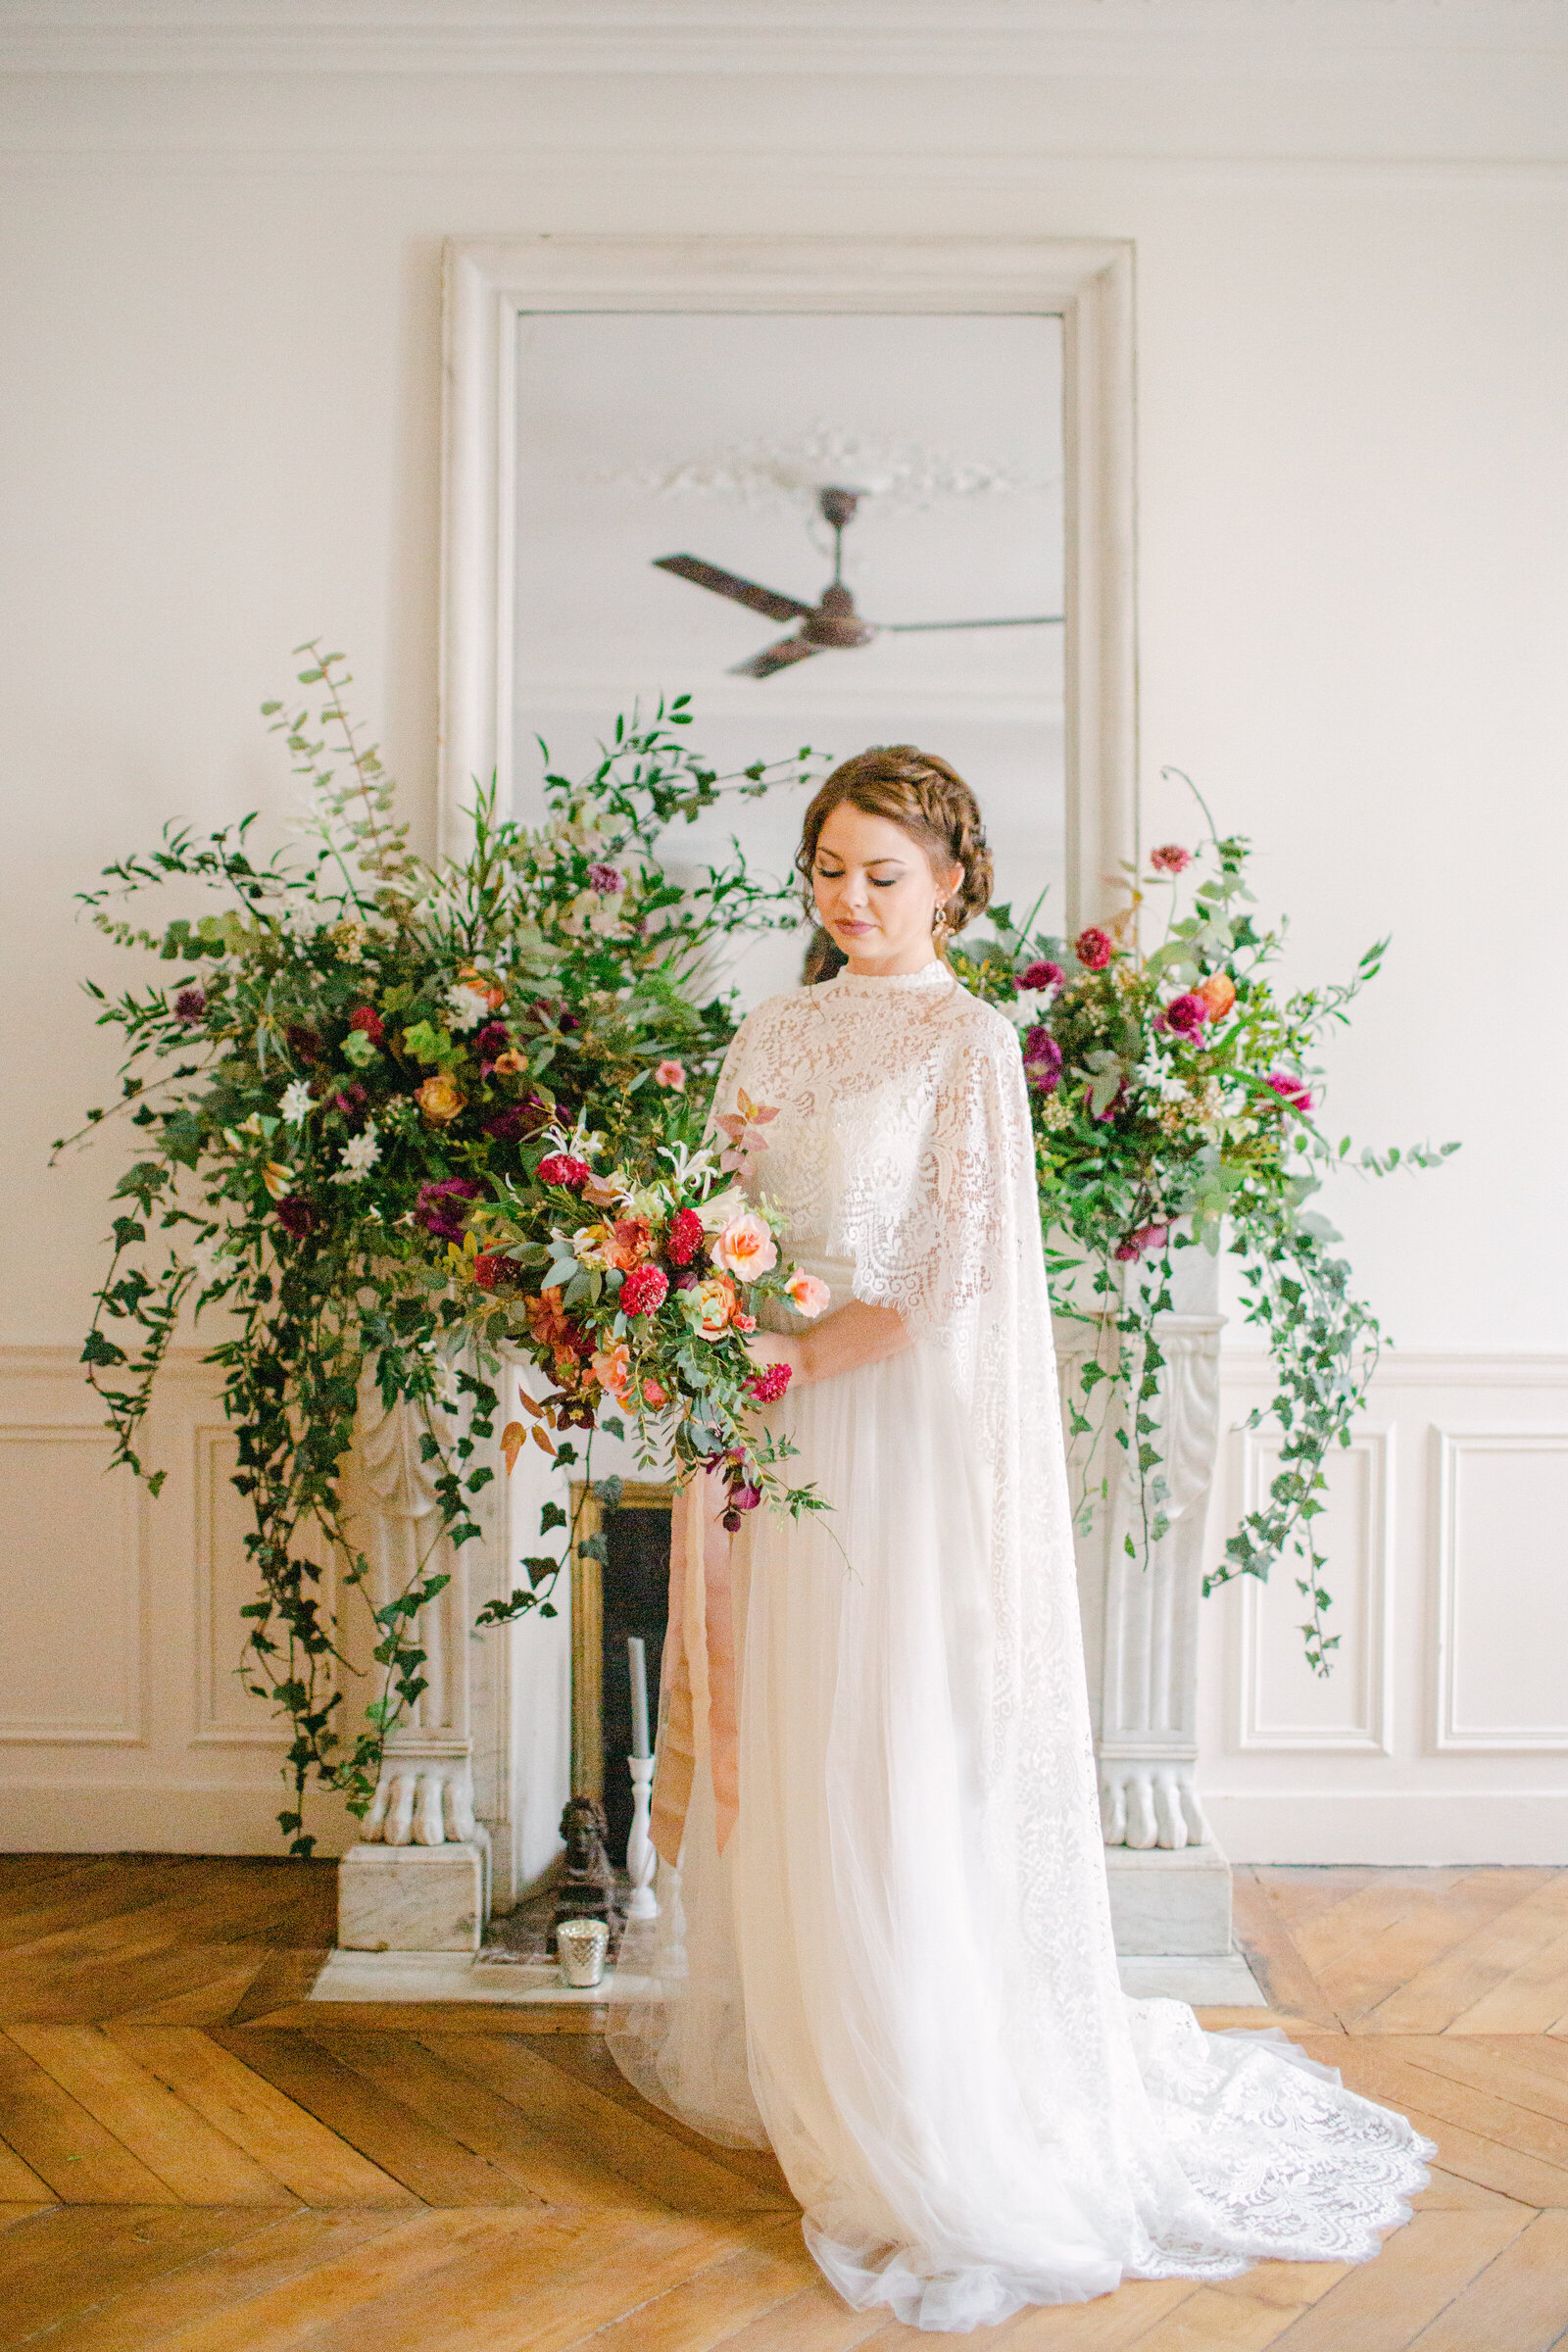 bride holding bouquet and standing in front of fireplace mantel with floral arrangement on it